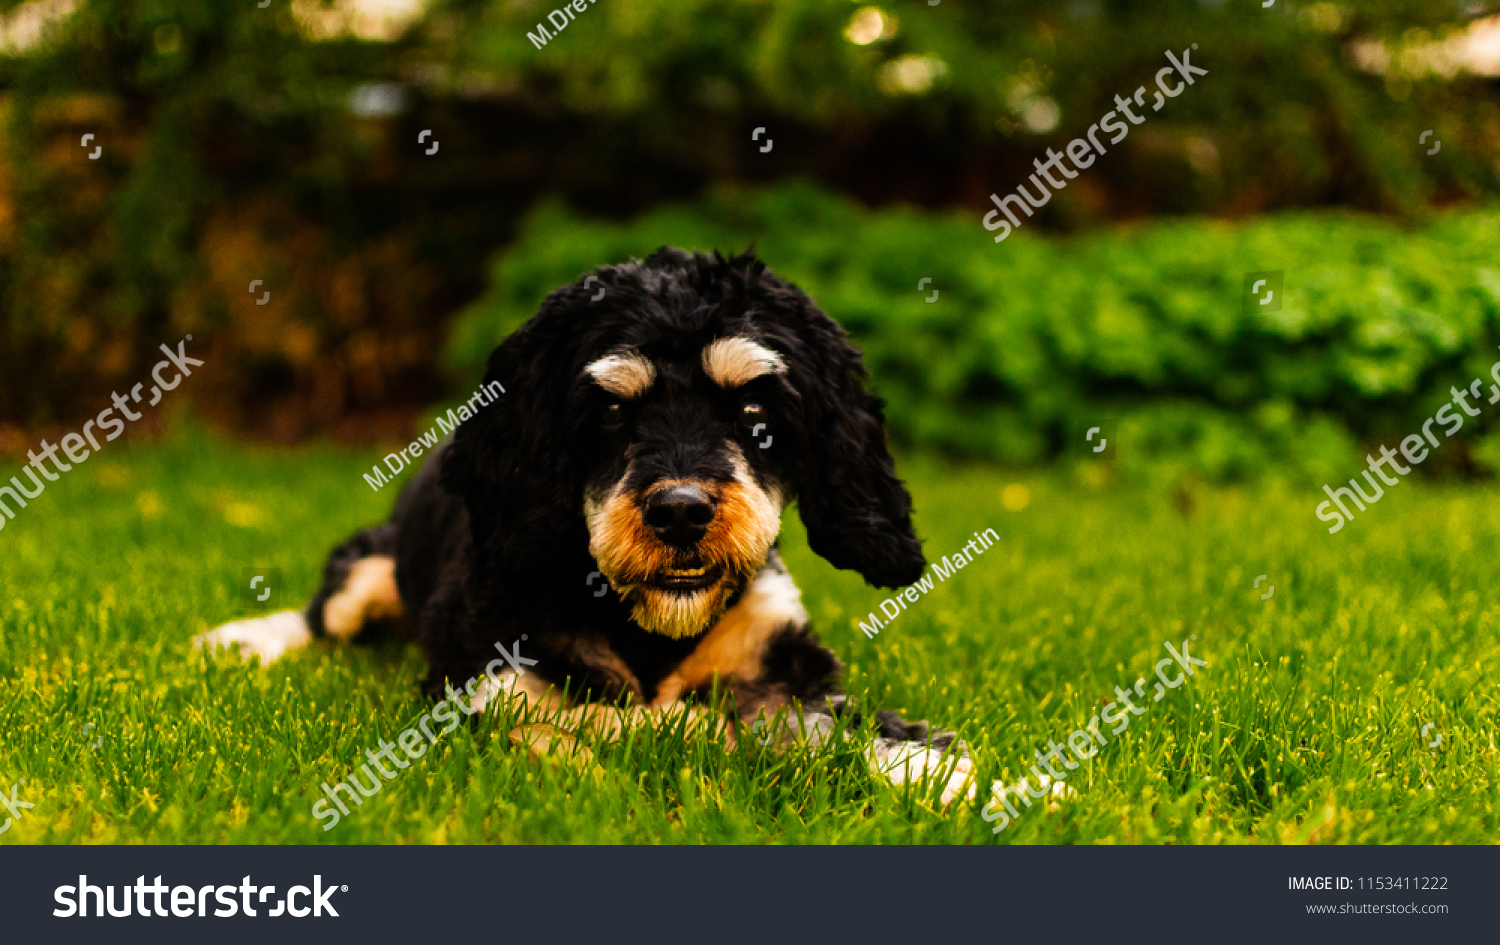 Cavapoo puppy dog pulling a funny face and lying down in the sun on the green grass.